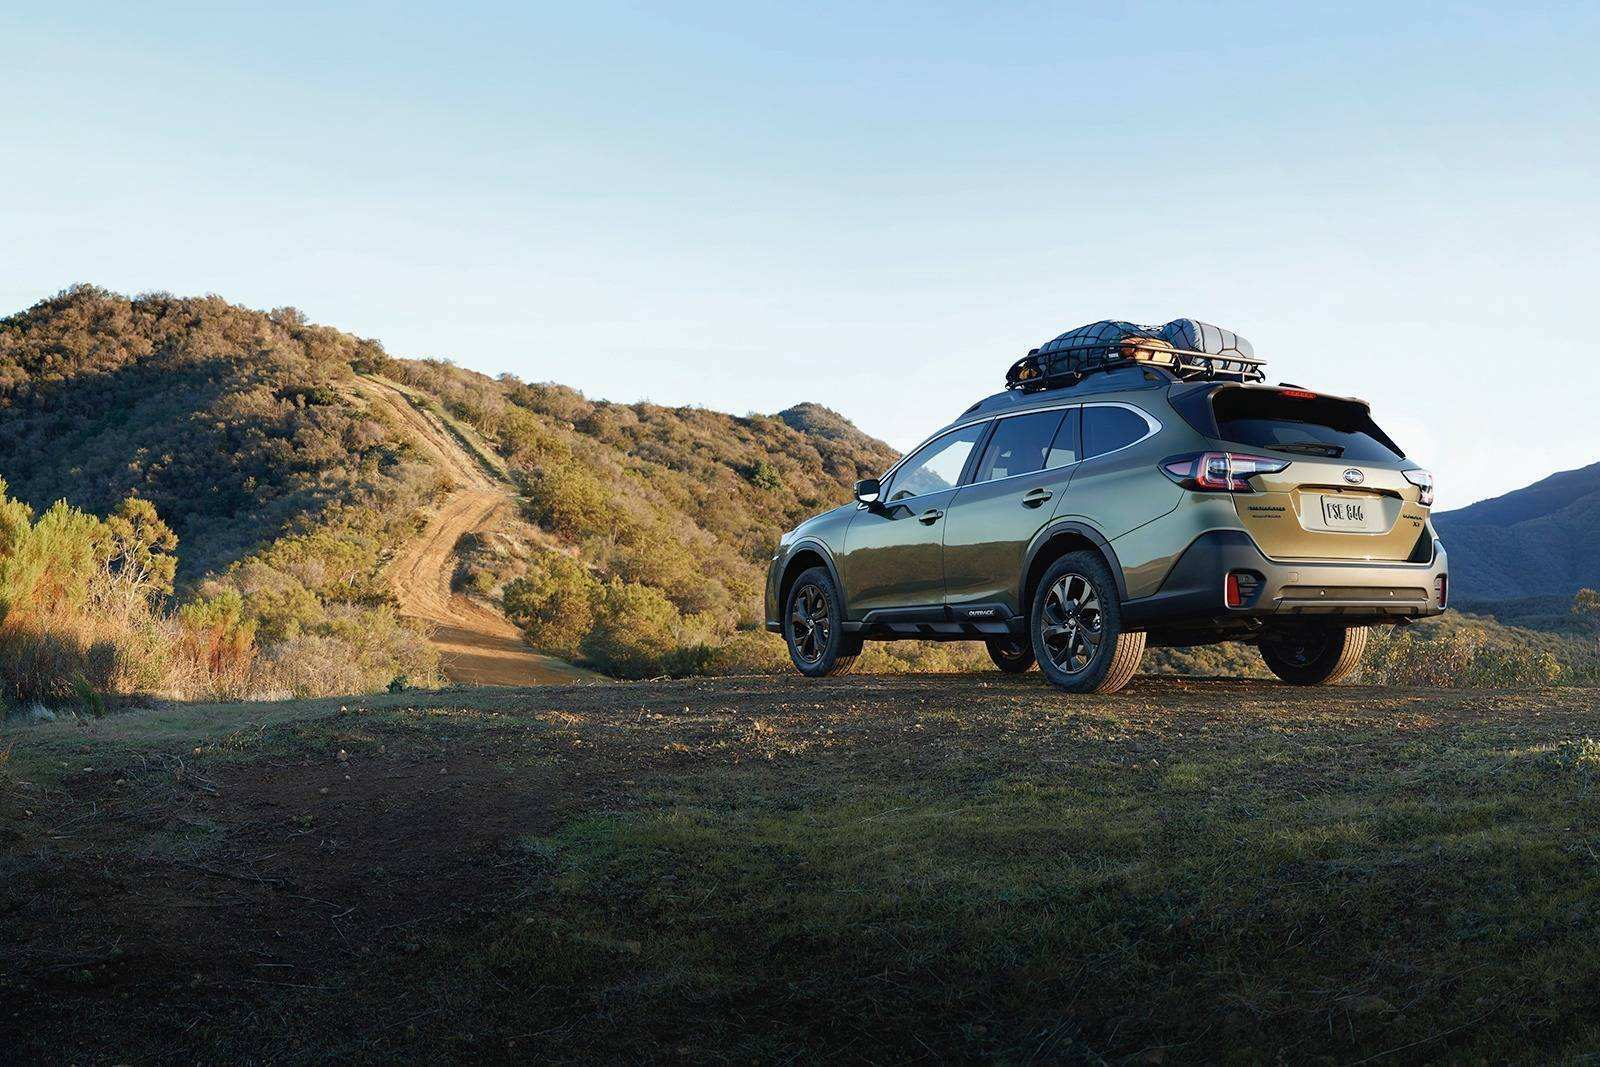 56 Great 2020 Subaru Outback Availability Spy Shoot by 2020 Subaru Outback Availability